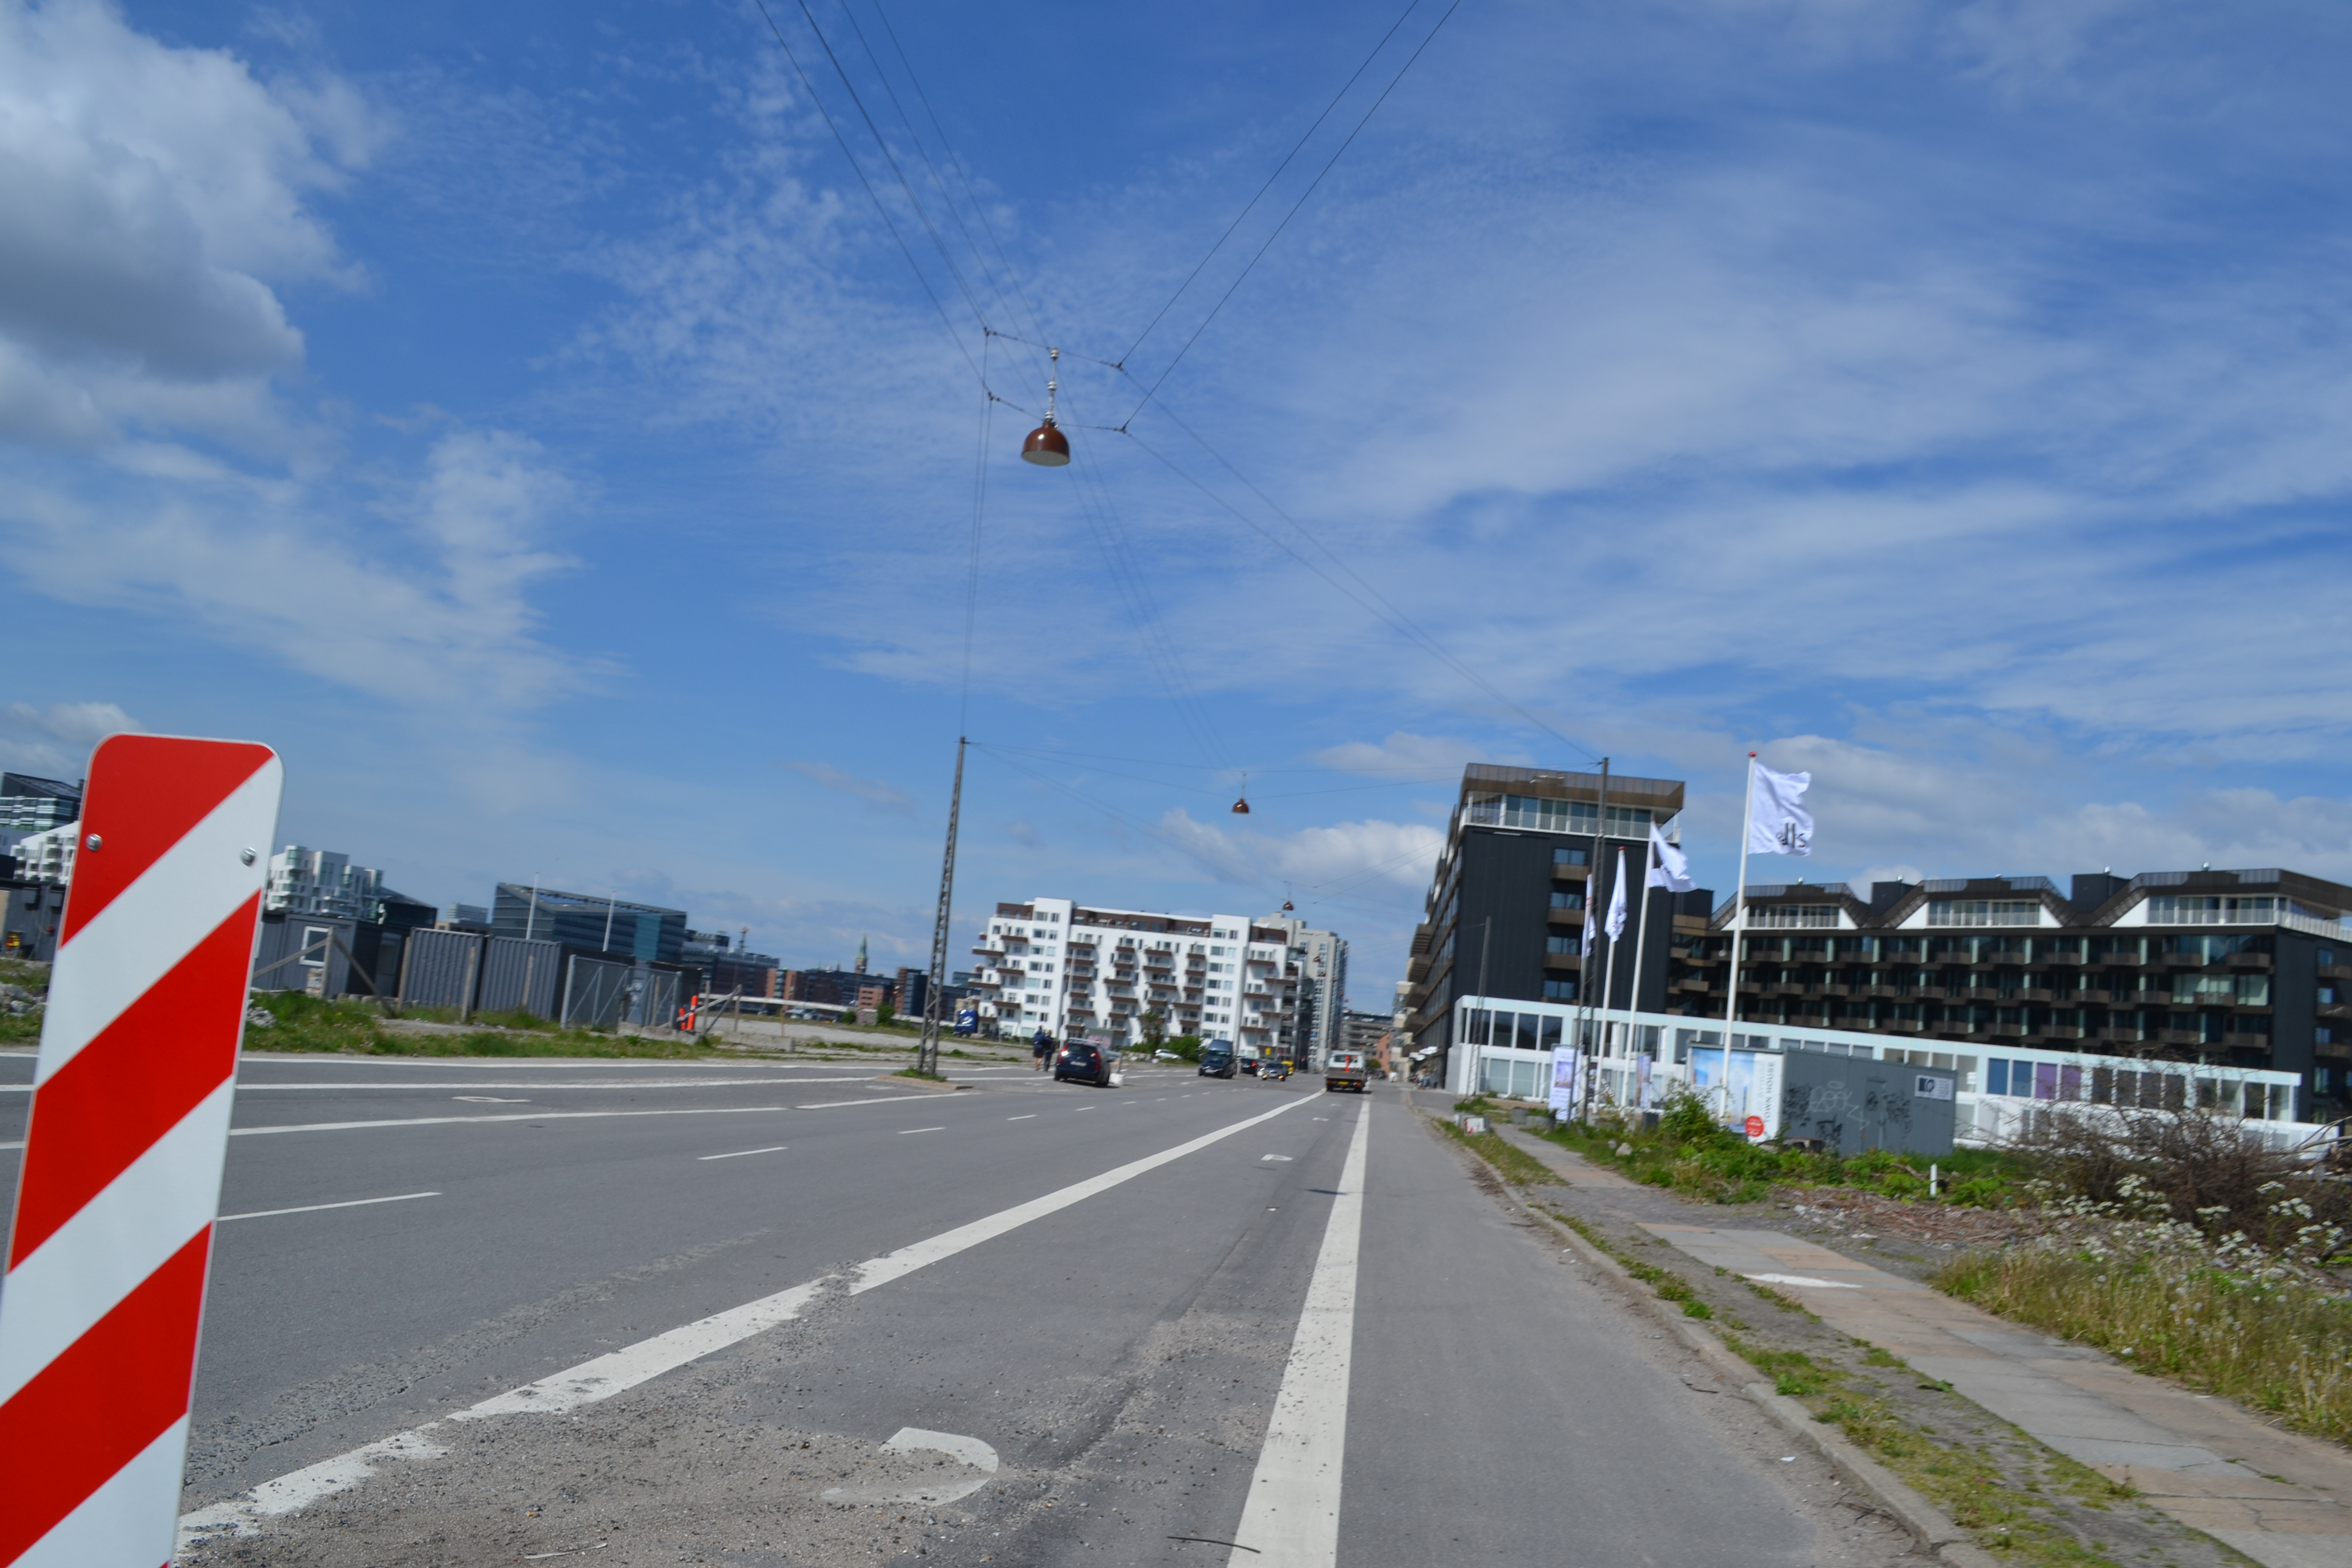 New development area with already existing bicycle lane